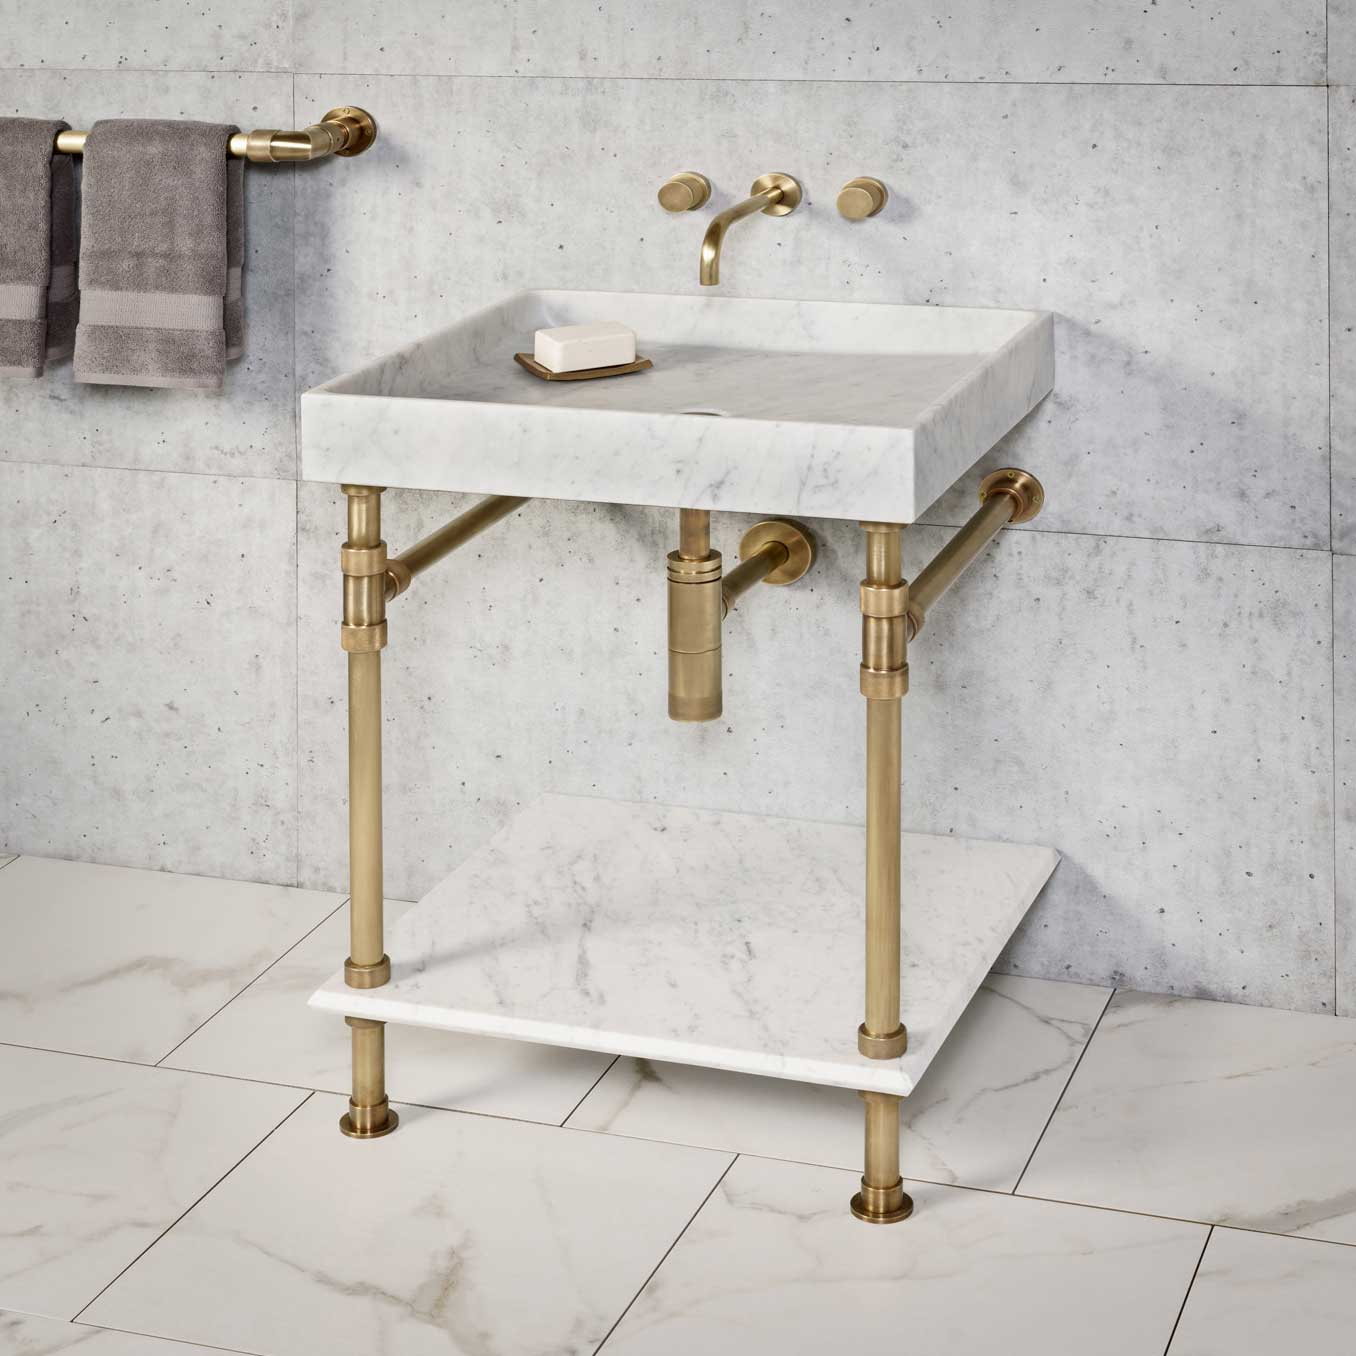 Ventus Bath Console with Stone Shelf